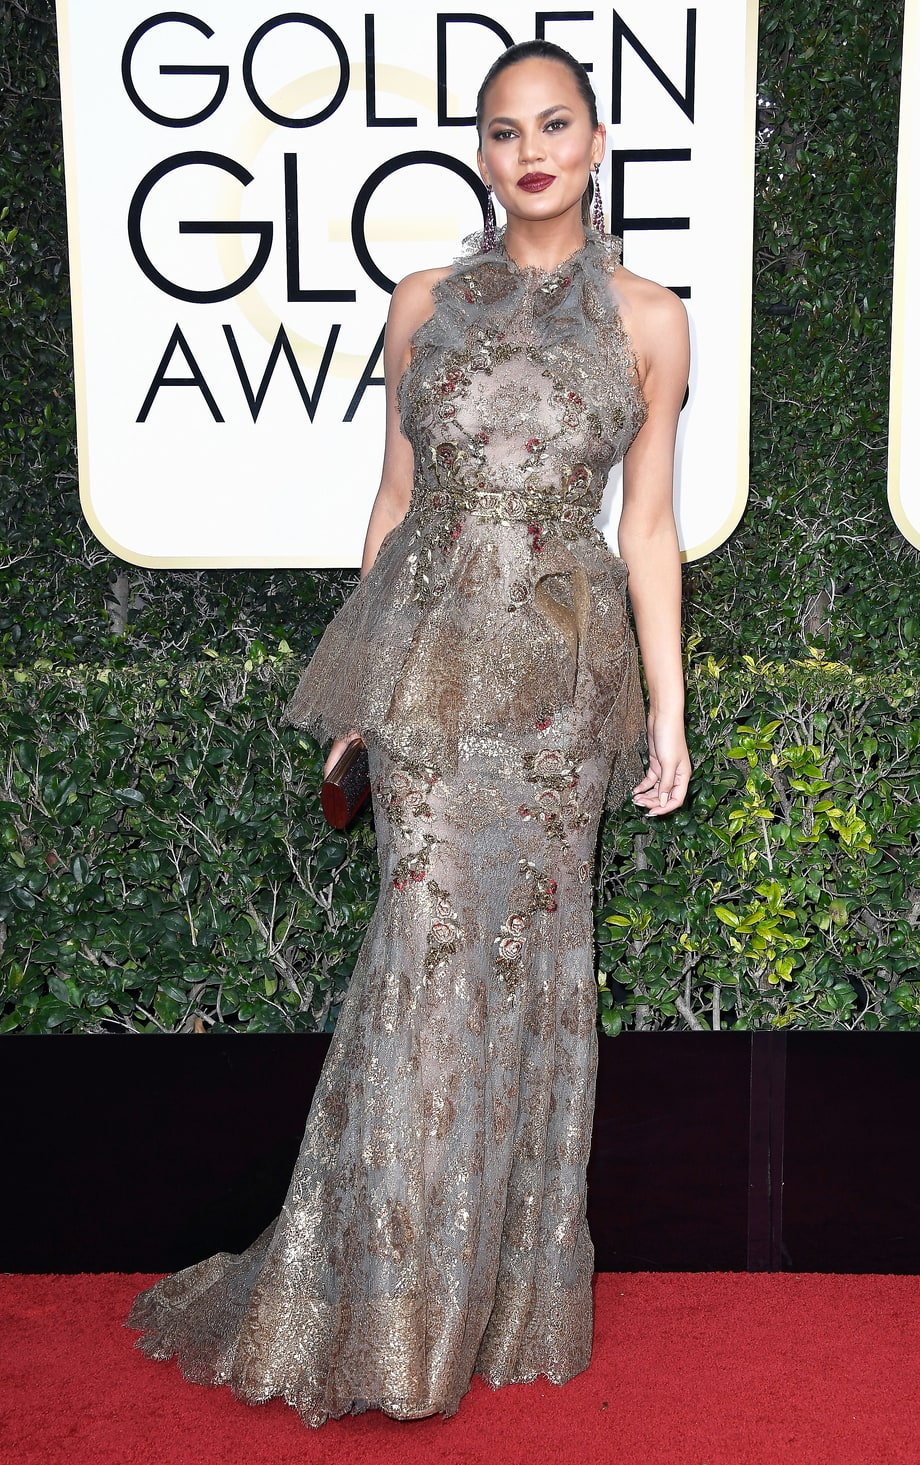 Chrissy Teigan in Marchesa (Photo Credit: Frazer Harrison / Getty)